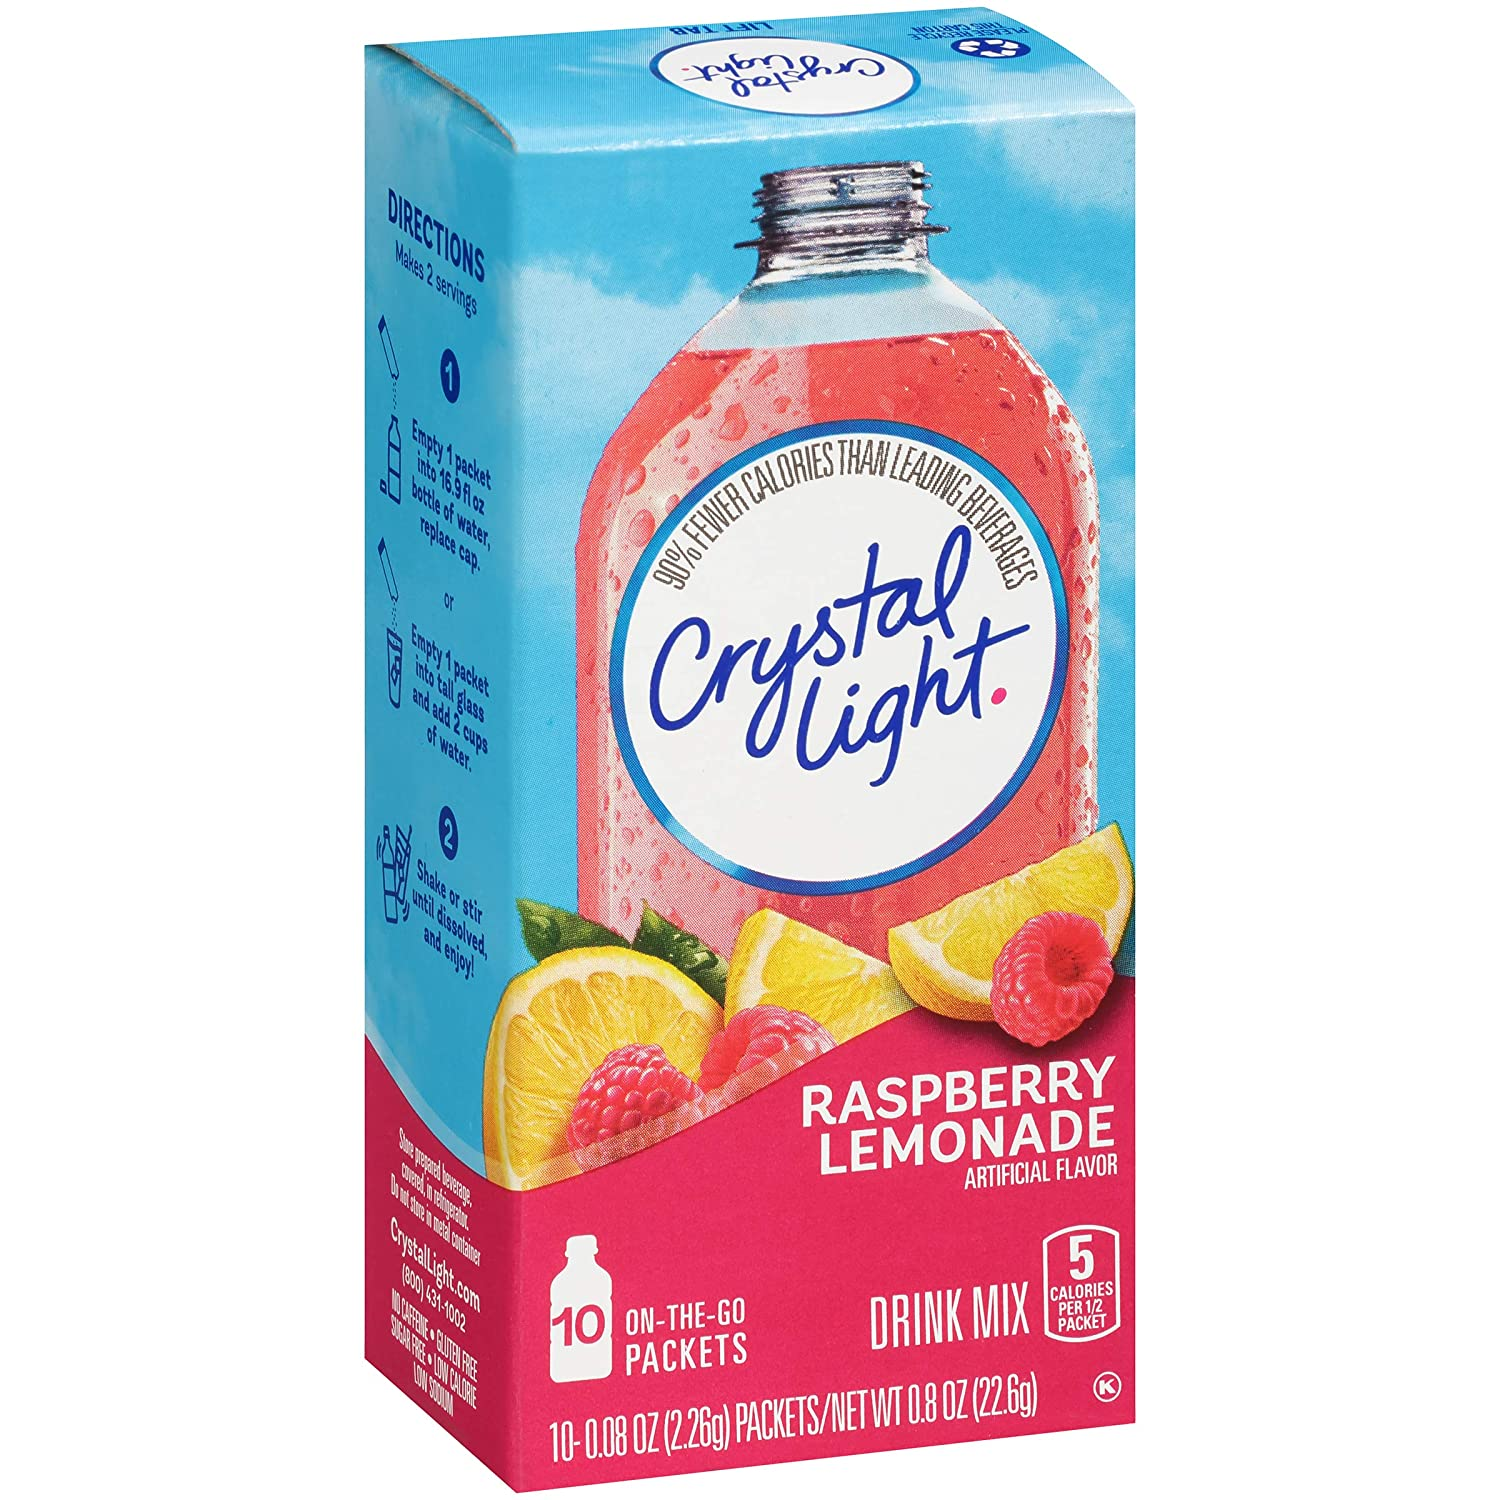 Crystal Light Raspberry Lemonade Drink Mix (60 On the Go Packets, 6 Canisters of 10)